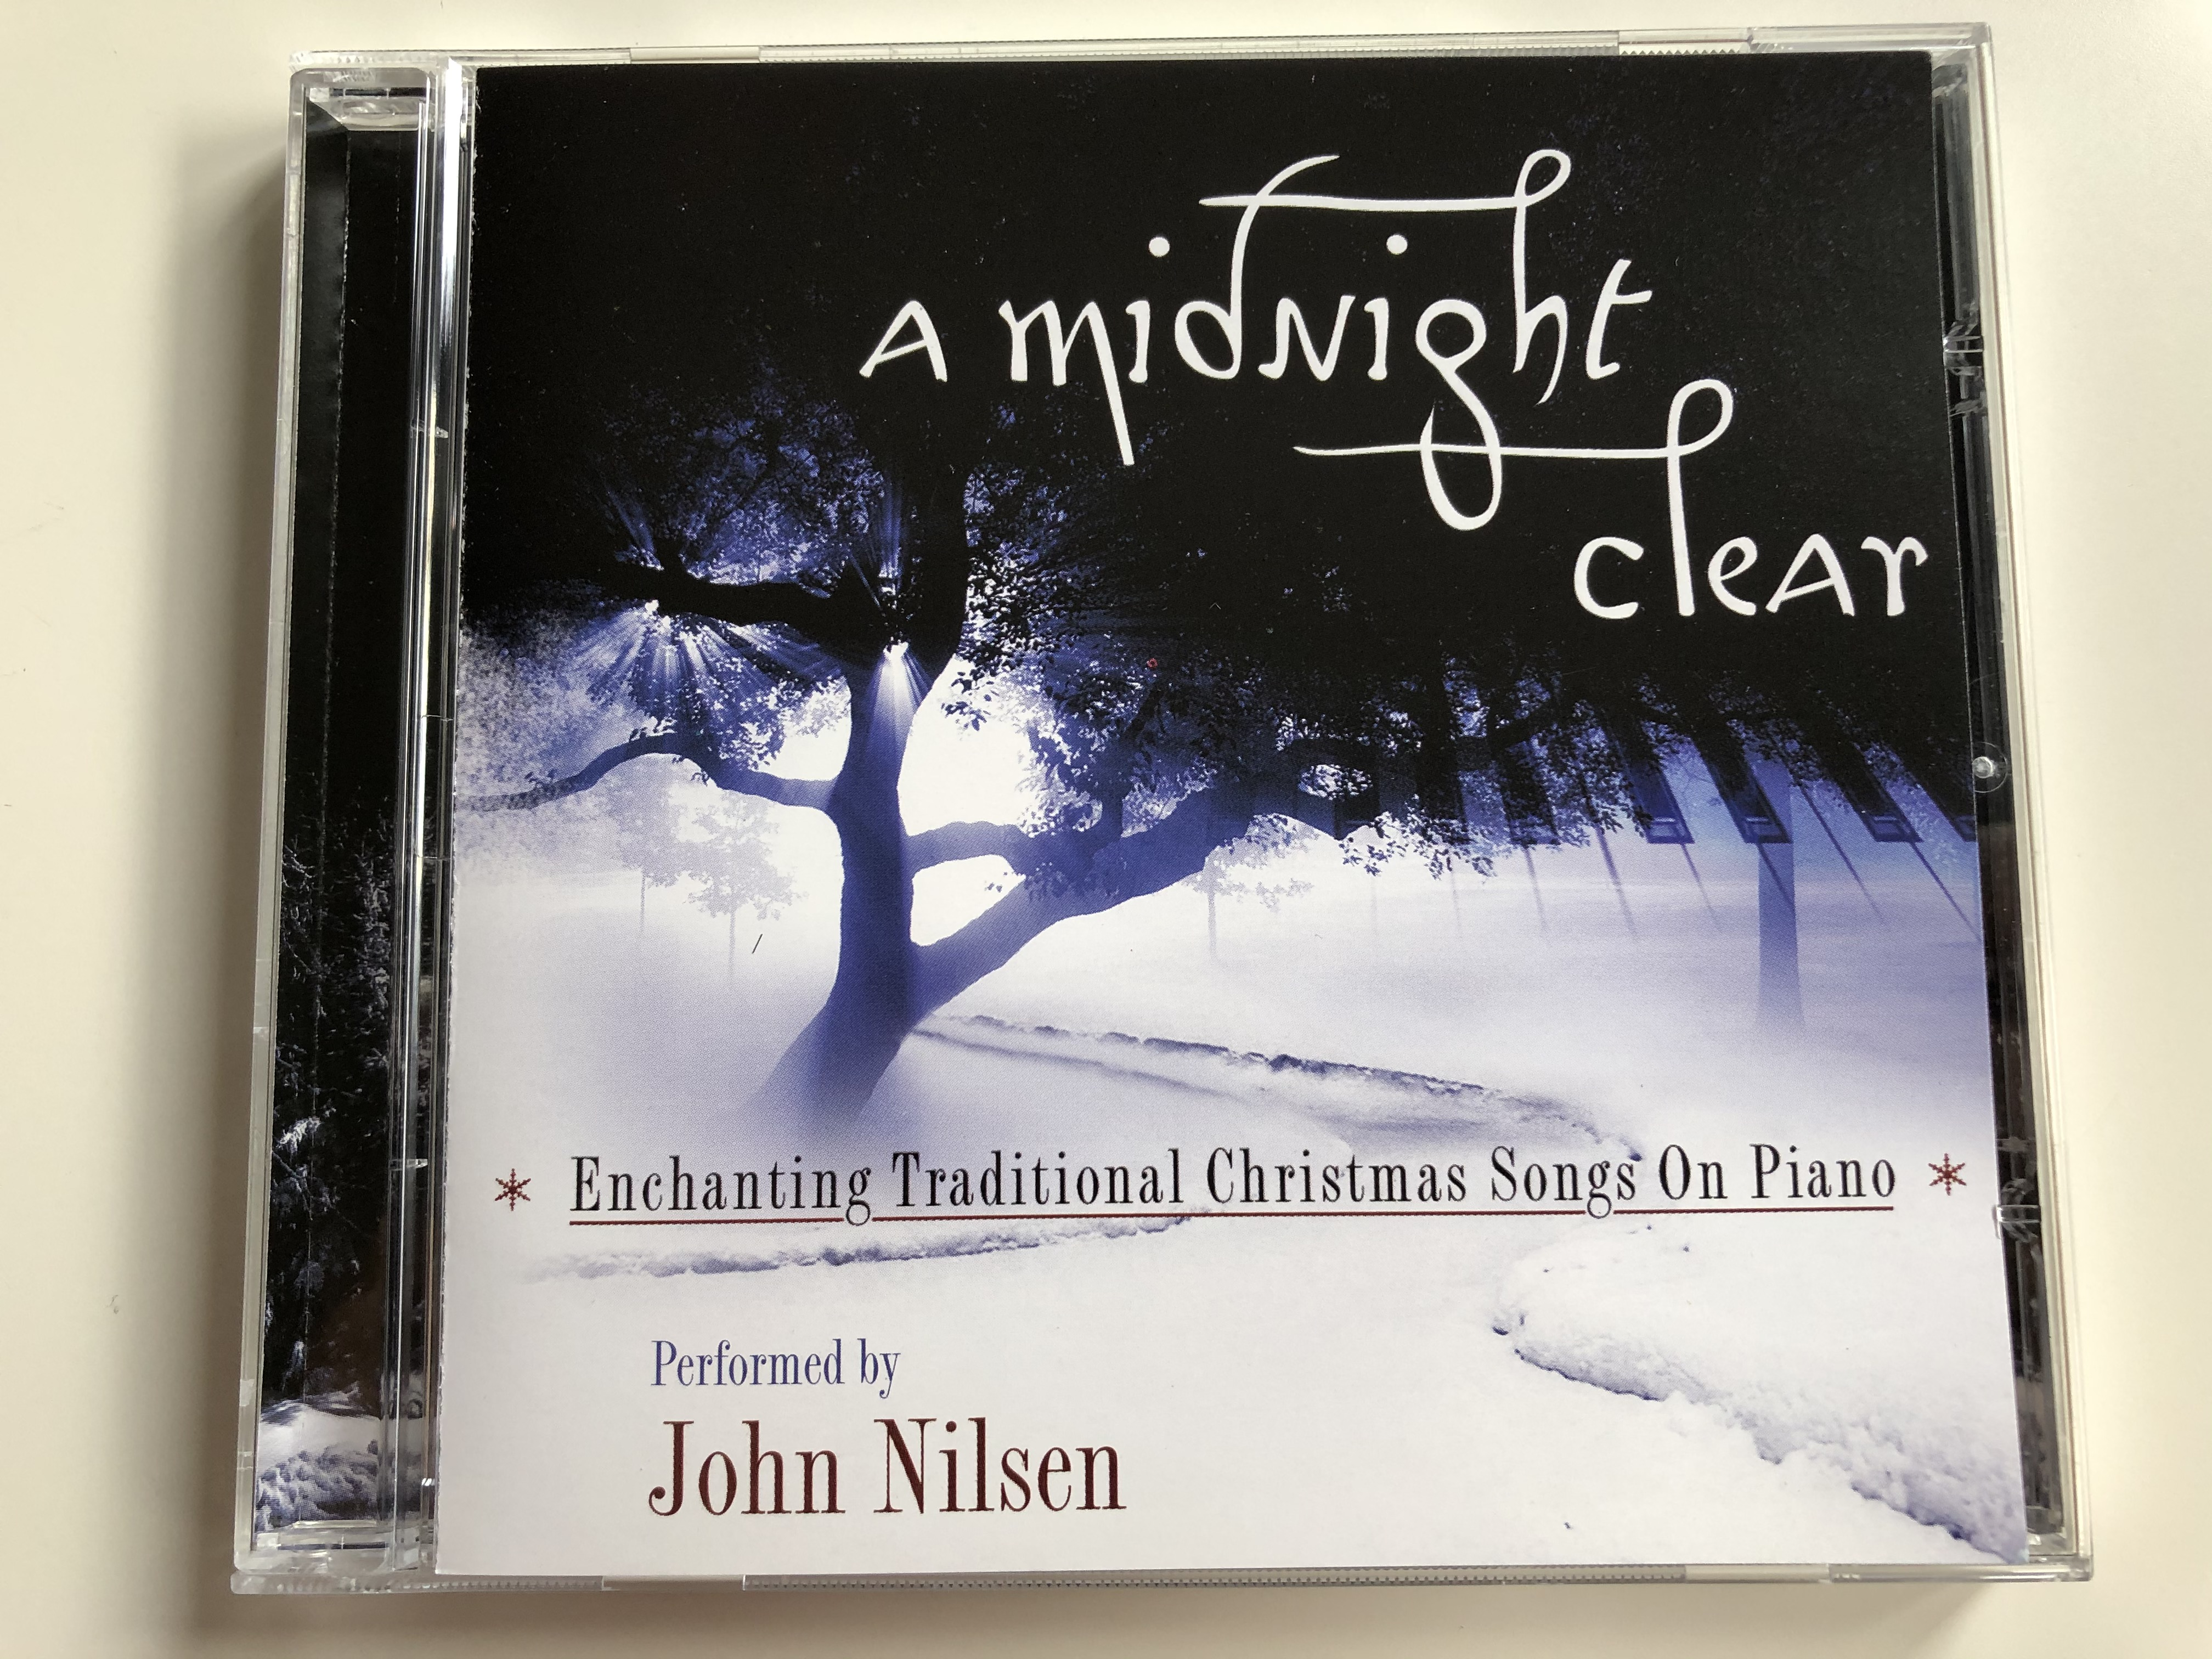 a-midnight-clear-enchanting-traditional-christmas-songs-on-piano-performed-by-john-nilsen-prism-leisure-audio-cd-2005-platcd-1362-1-.jpg